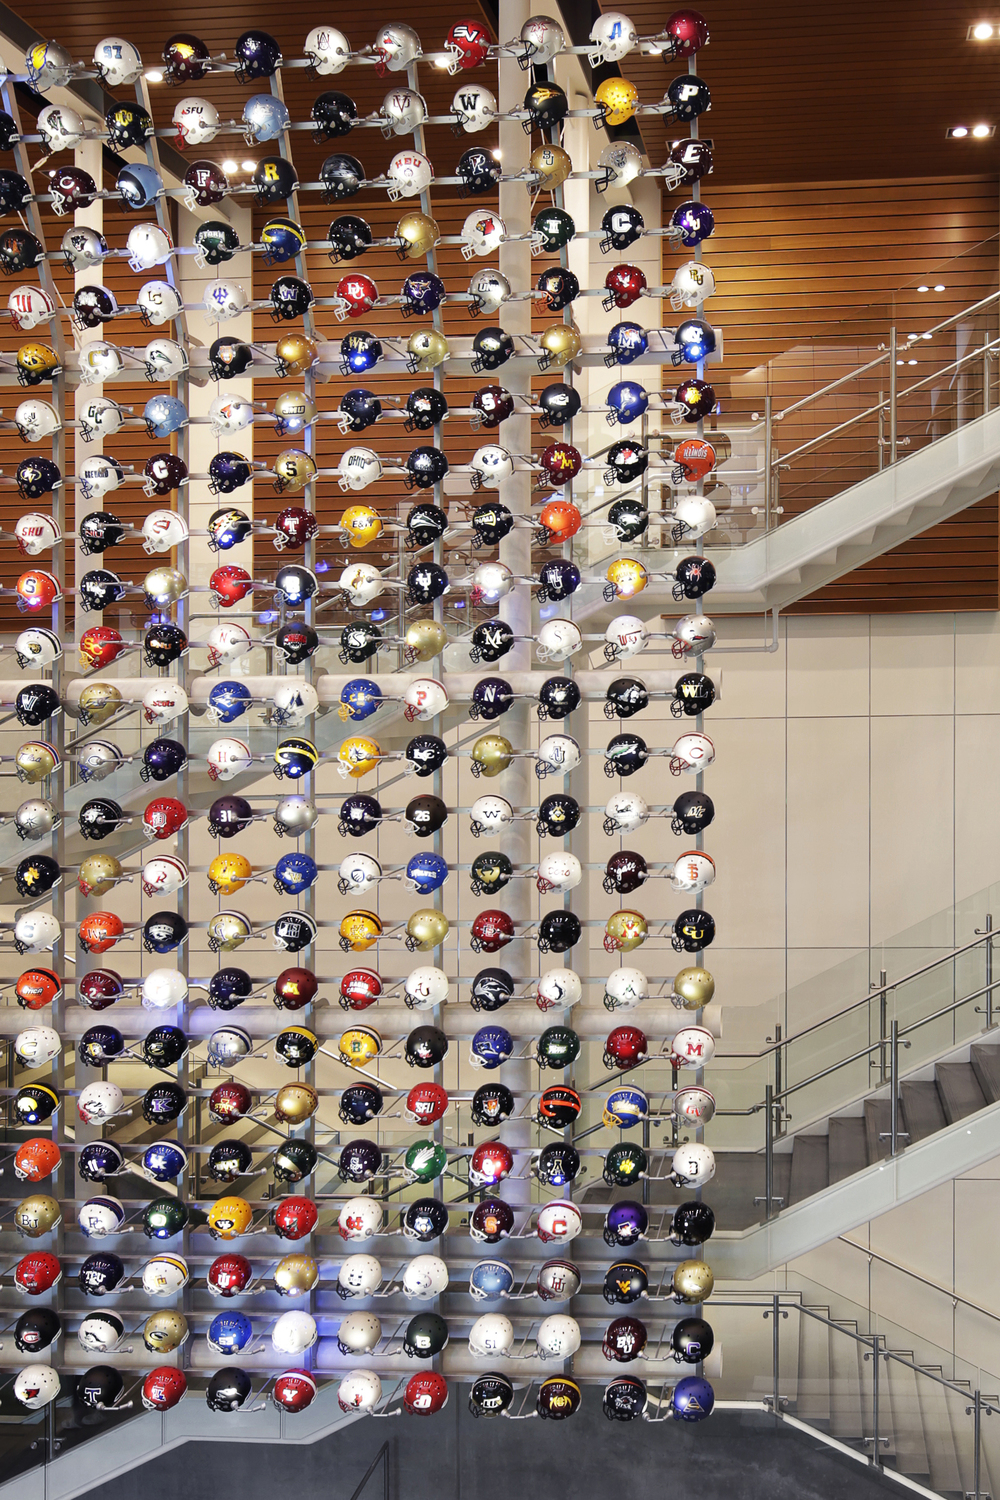 College Football Hall of Fame, Atlanta, GA